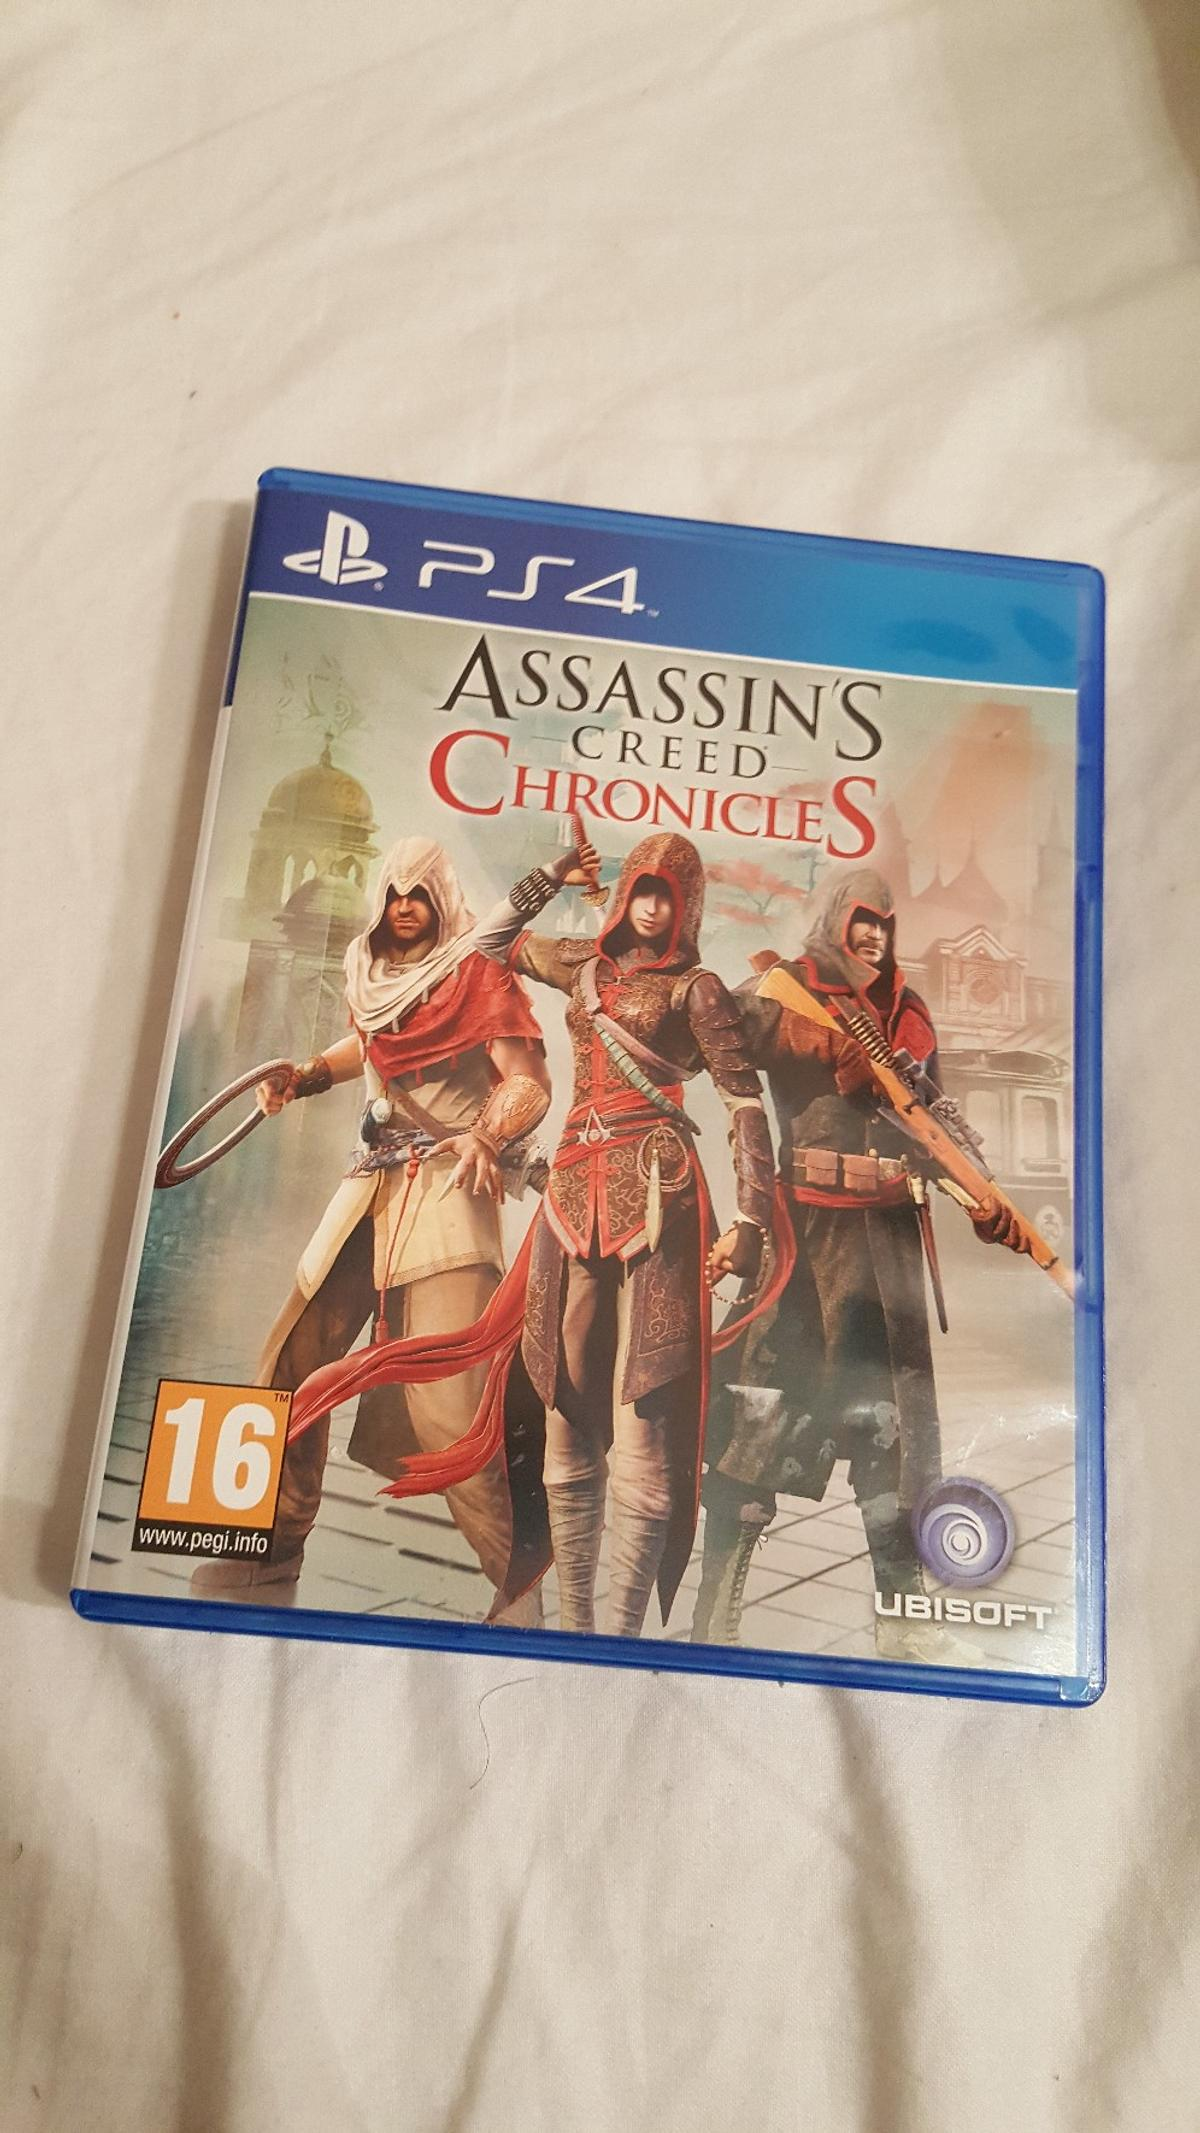 Ps4 Assassin S Creed Chronicles Trilogy Pack In Tn26 Hothfield For